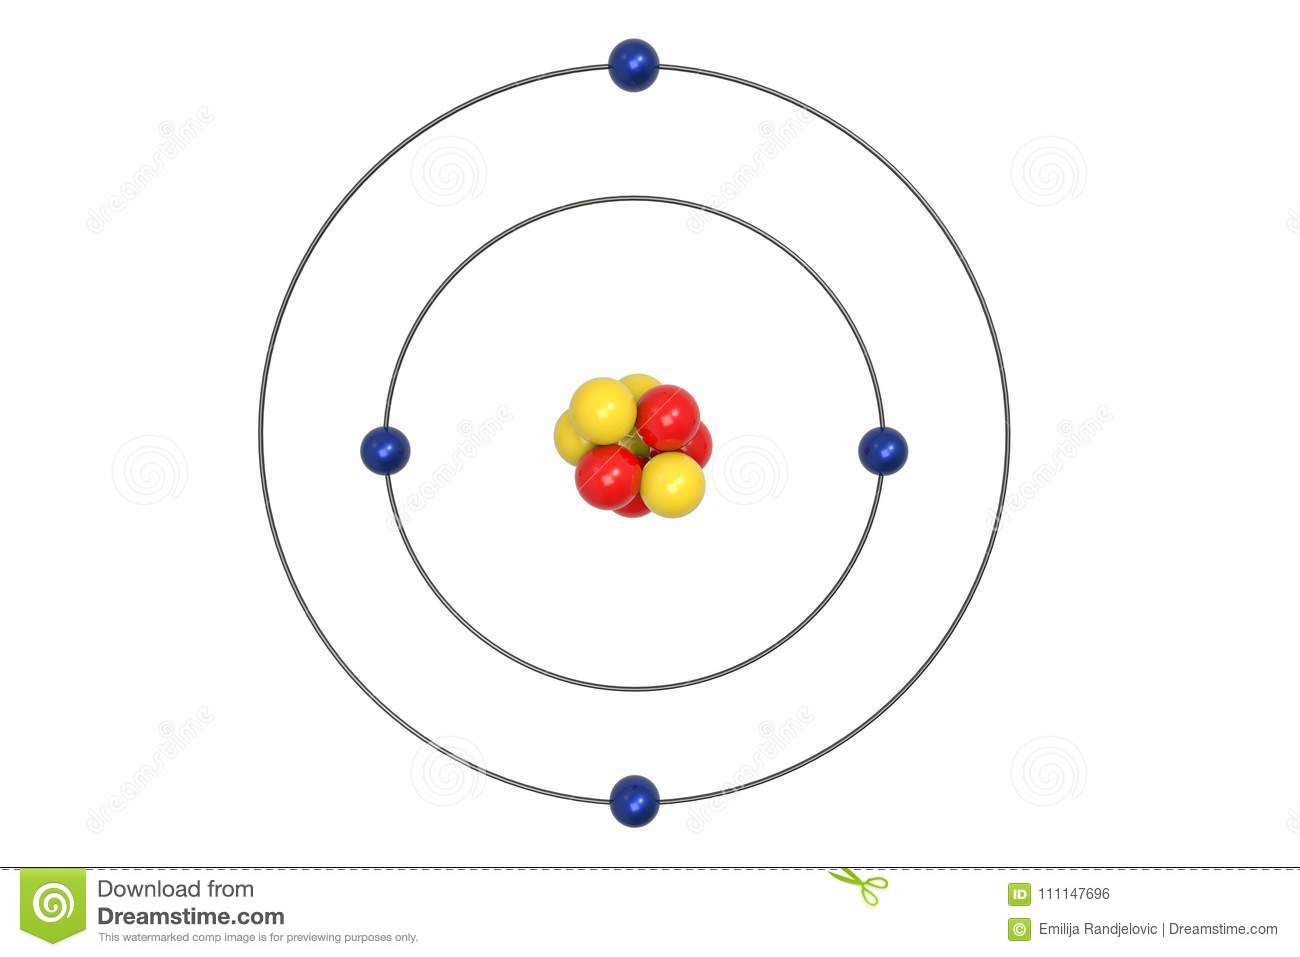 hight resolution of beryllium atom bohr model with proton neutron and electron